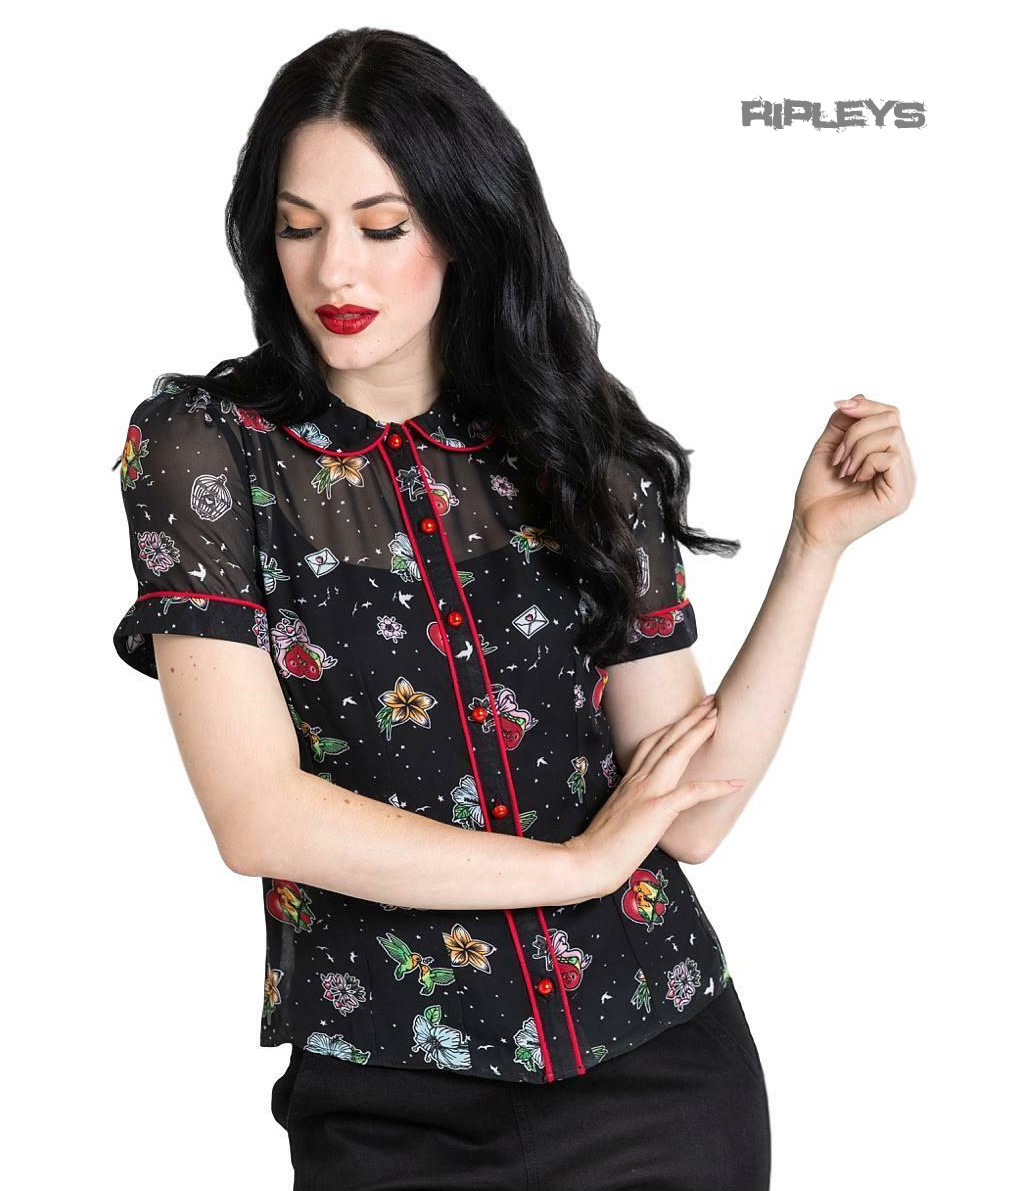 Hell-Bunny-Shirt-Top-Black-LOVEBIRD-Blouse-Retro-Vintage-Flowers-All-Sizes thumbnail 10